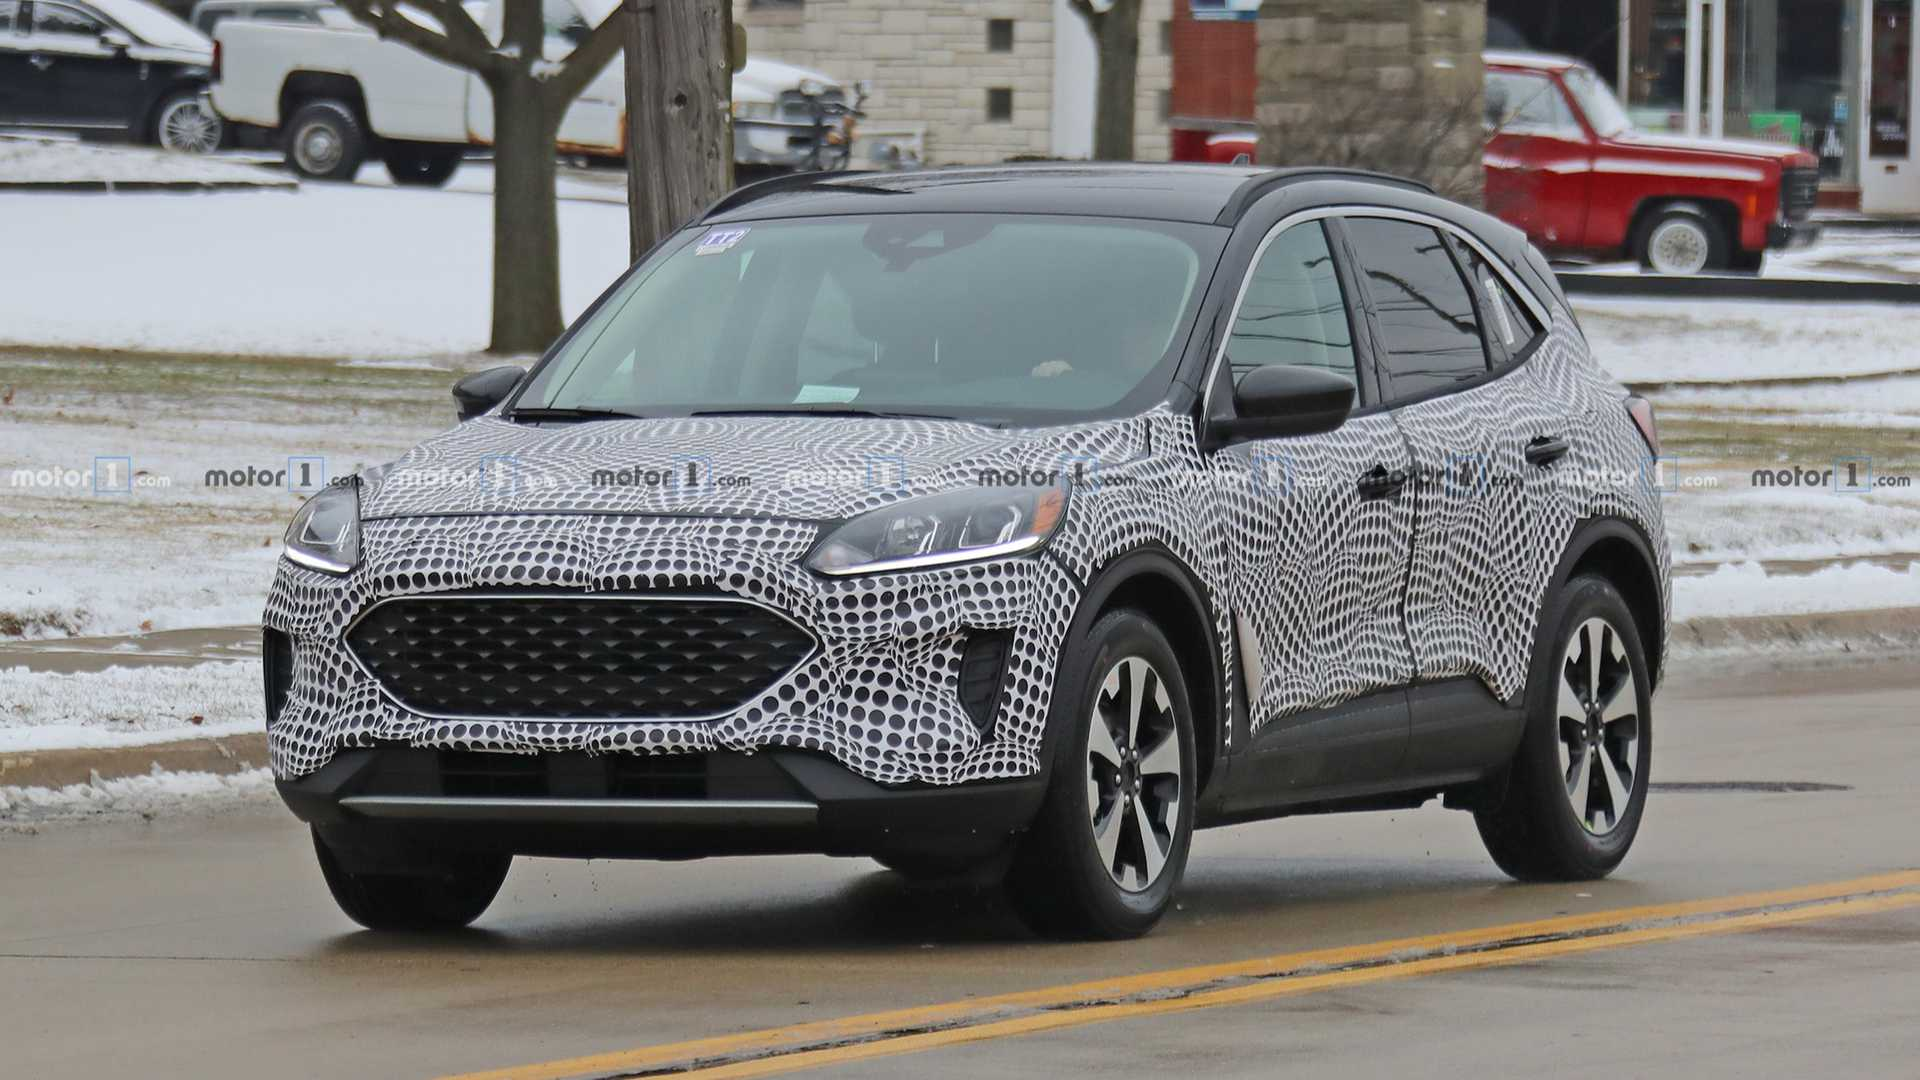 Ford Hybrid Suv >> 2020 Ford Escape Spied Inside And Out Hybrid Confirmed